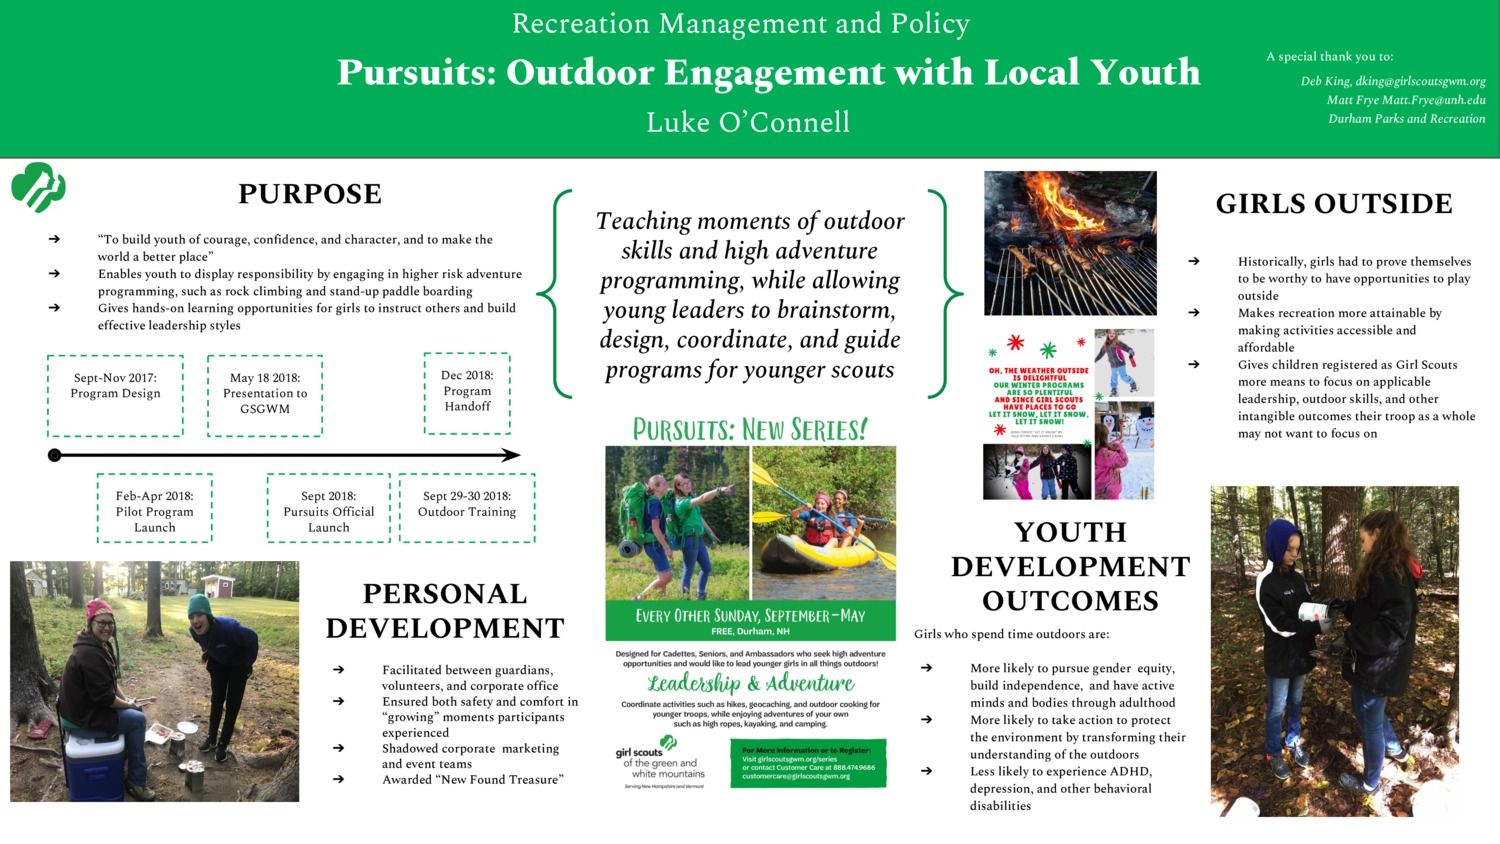 Pursuits: Outdoor Engagement With Local Youth by leo1012